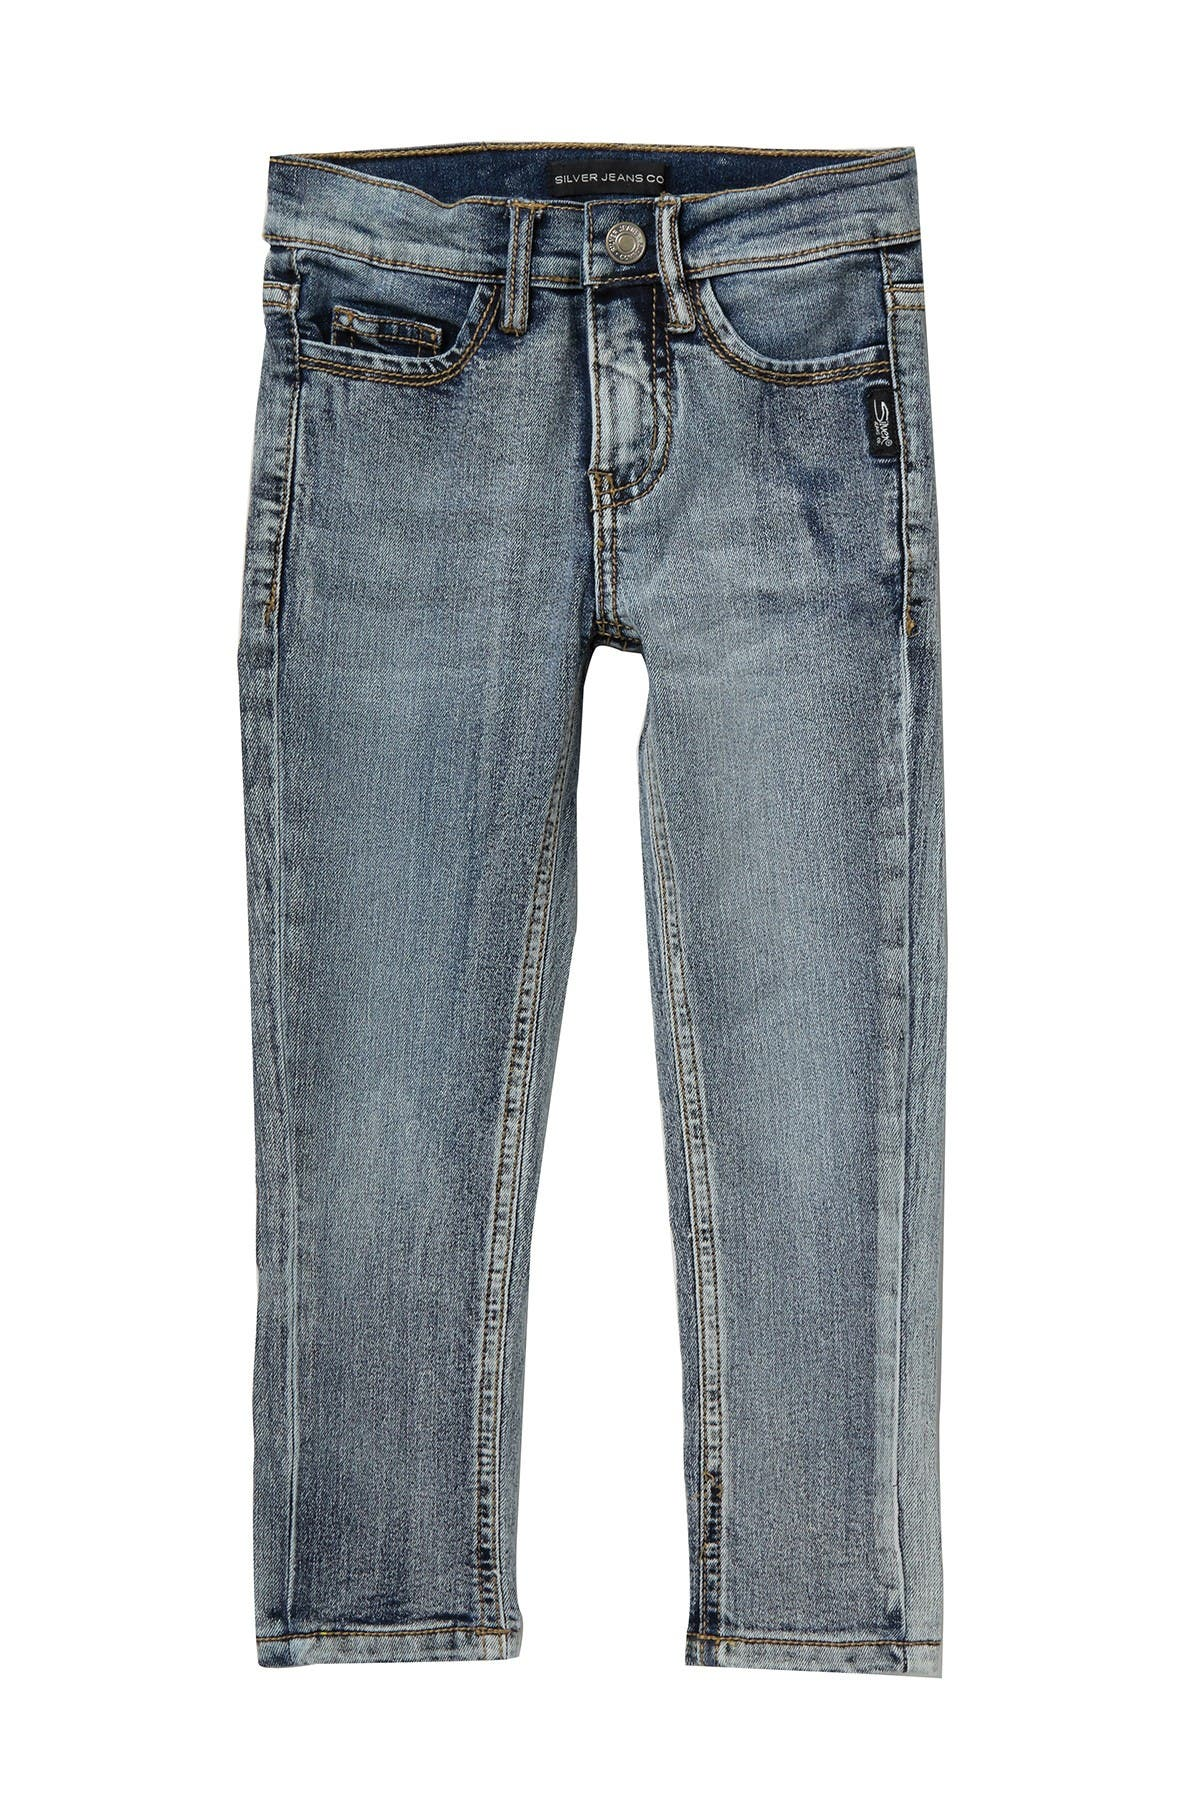 Image of Silver Jeans Co. Skinny Fit Denim